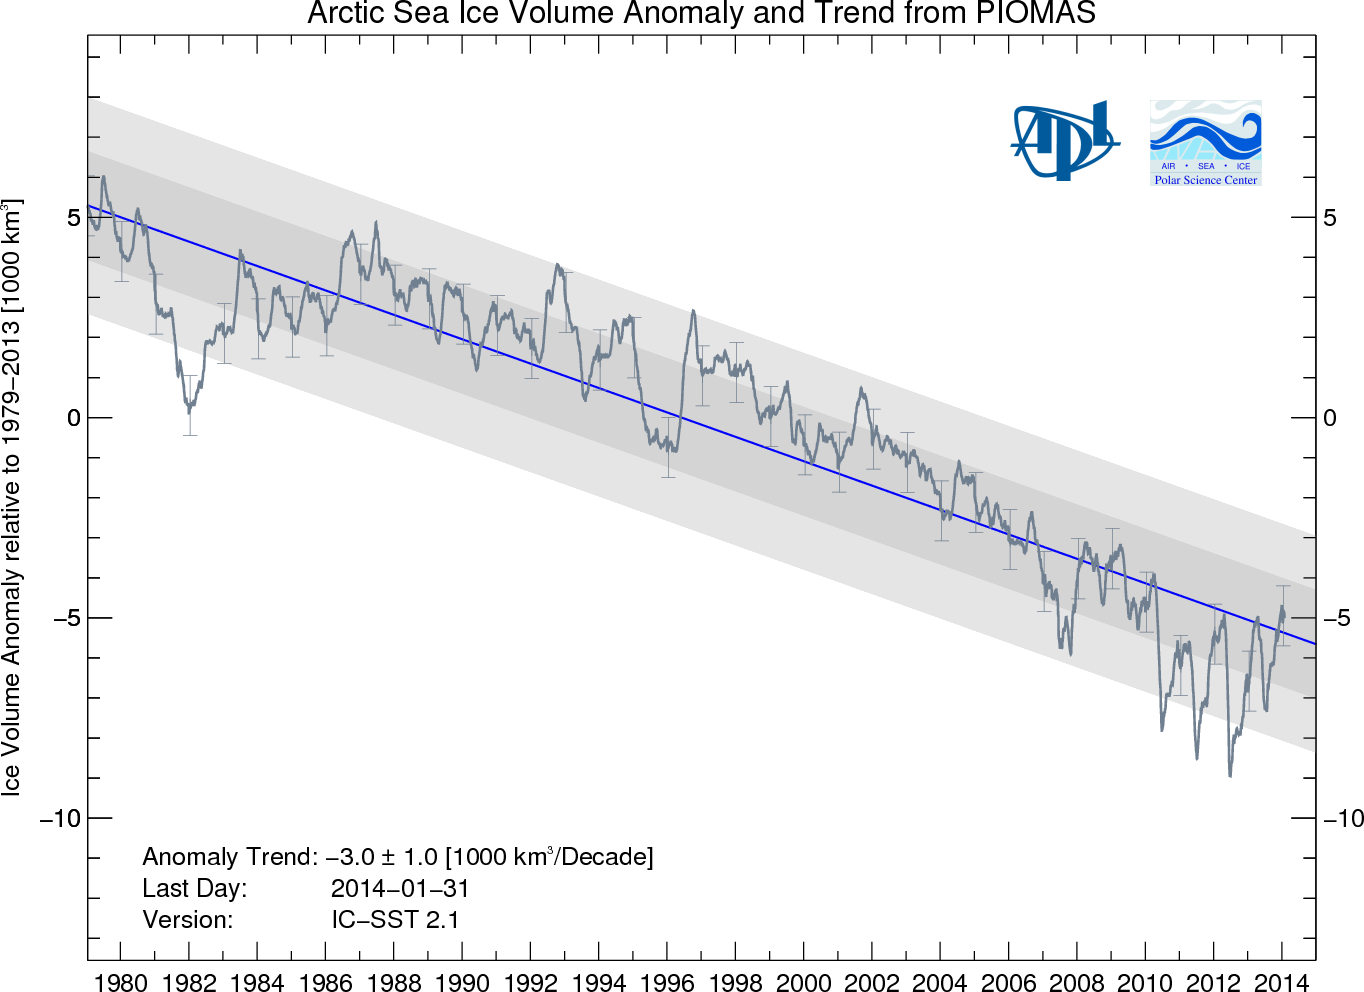 Arctic Sea Ice Volume Anomaly, 1979-Present